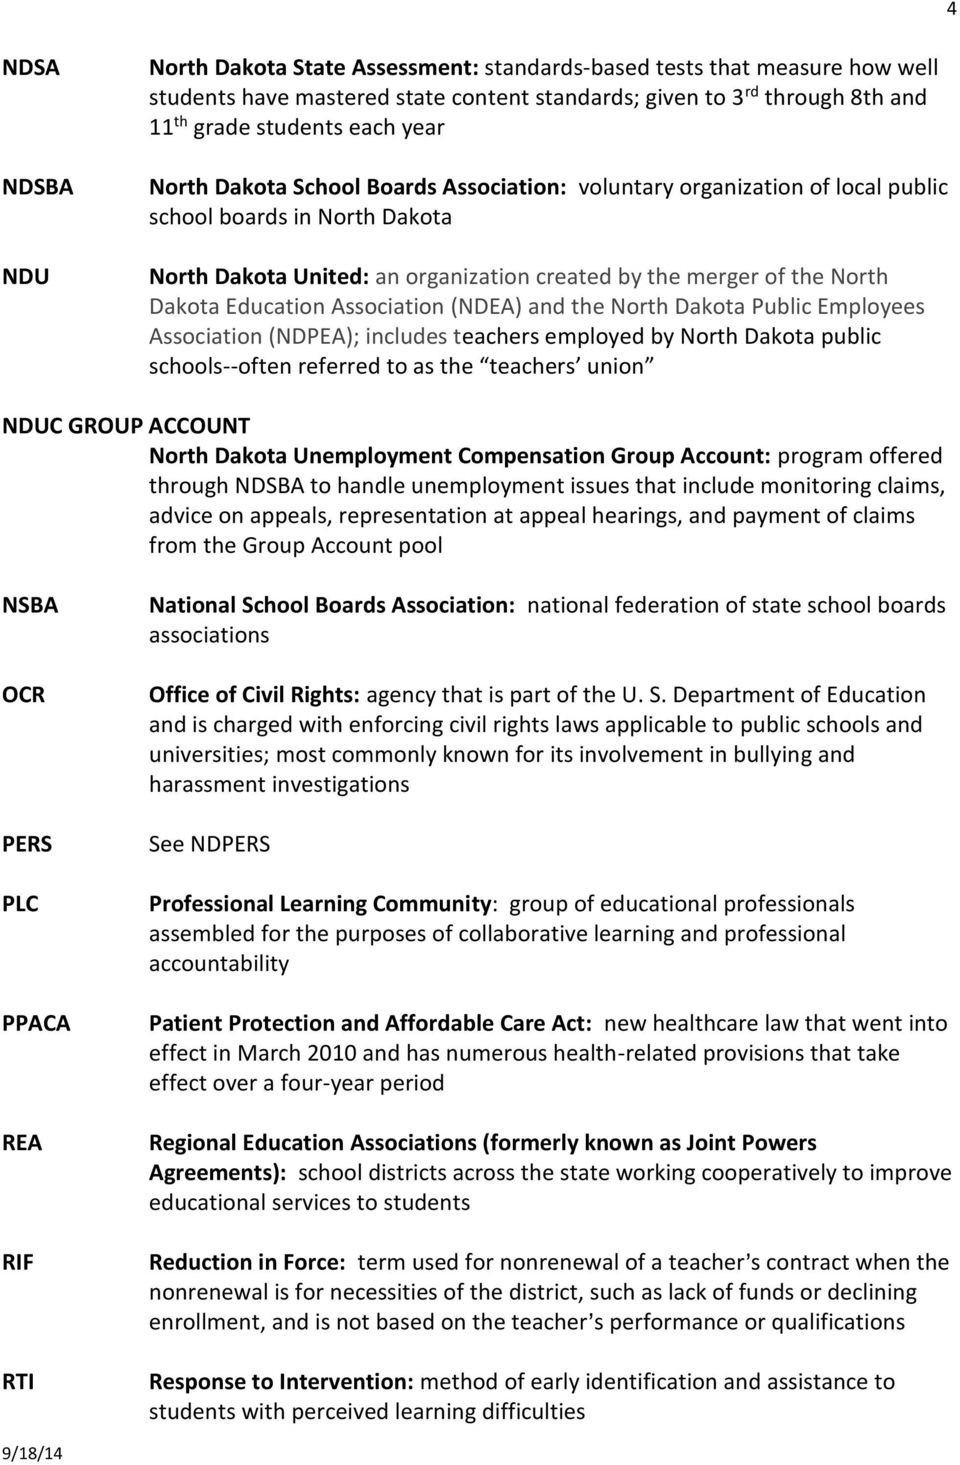 Education Association (NDEA) and the North Dakota Public Employees Association (NDPEA); includes teachers employed by North Dakota public schools--often referred to as the teachers union NDUC GROUP